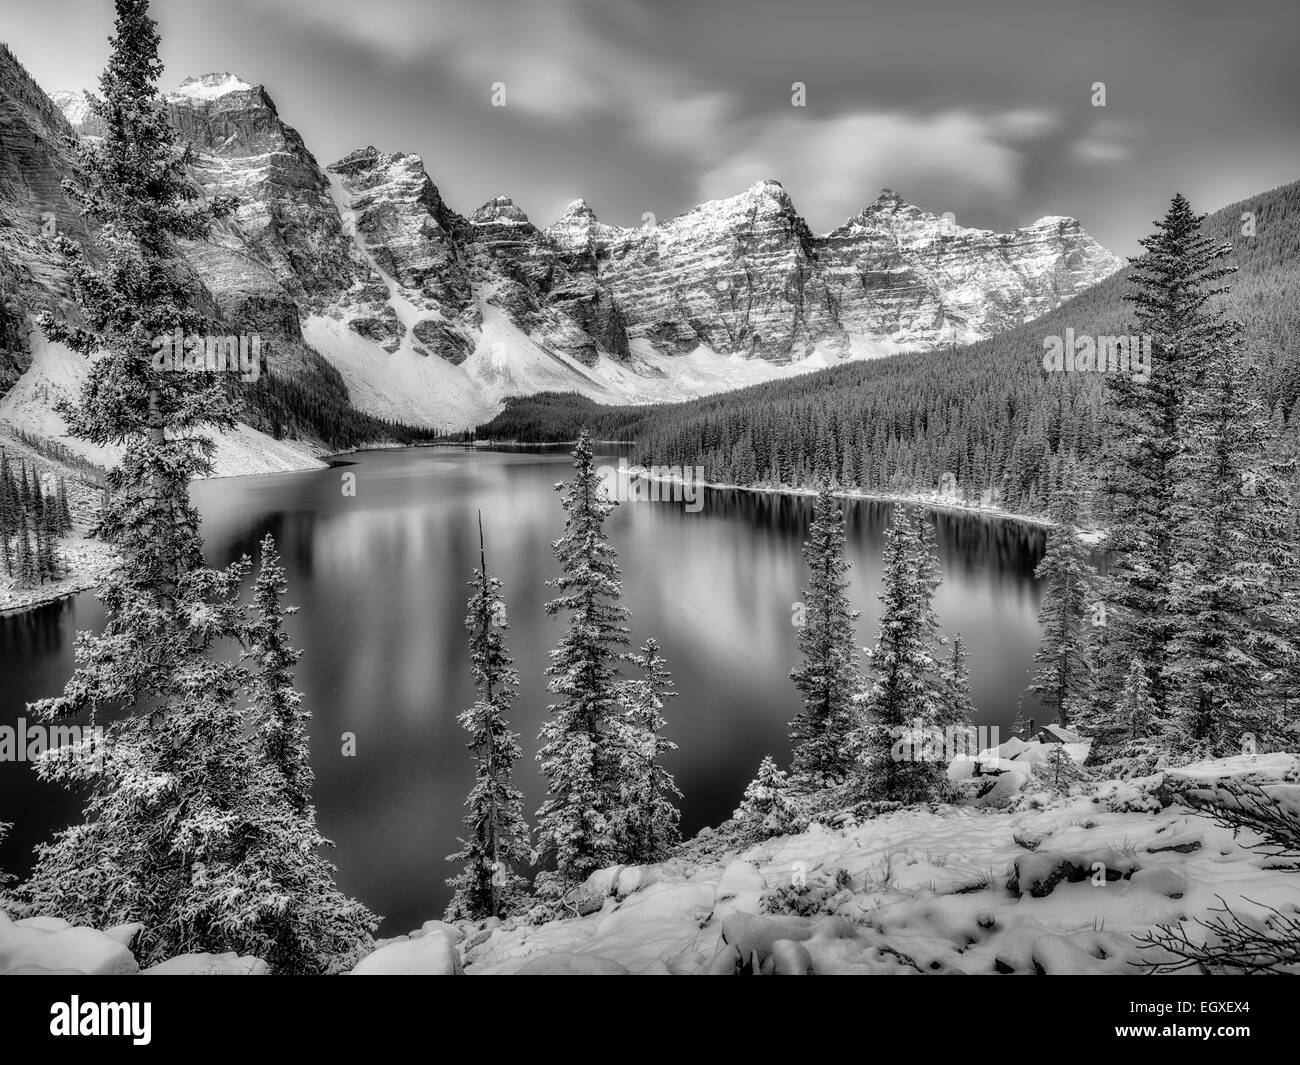 First snow of the season on Moraine Lake. Banff National Park, Alberta, Canada - Stock Image